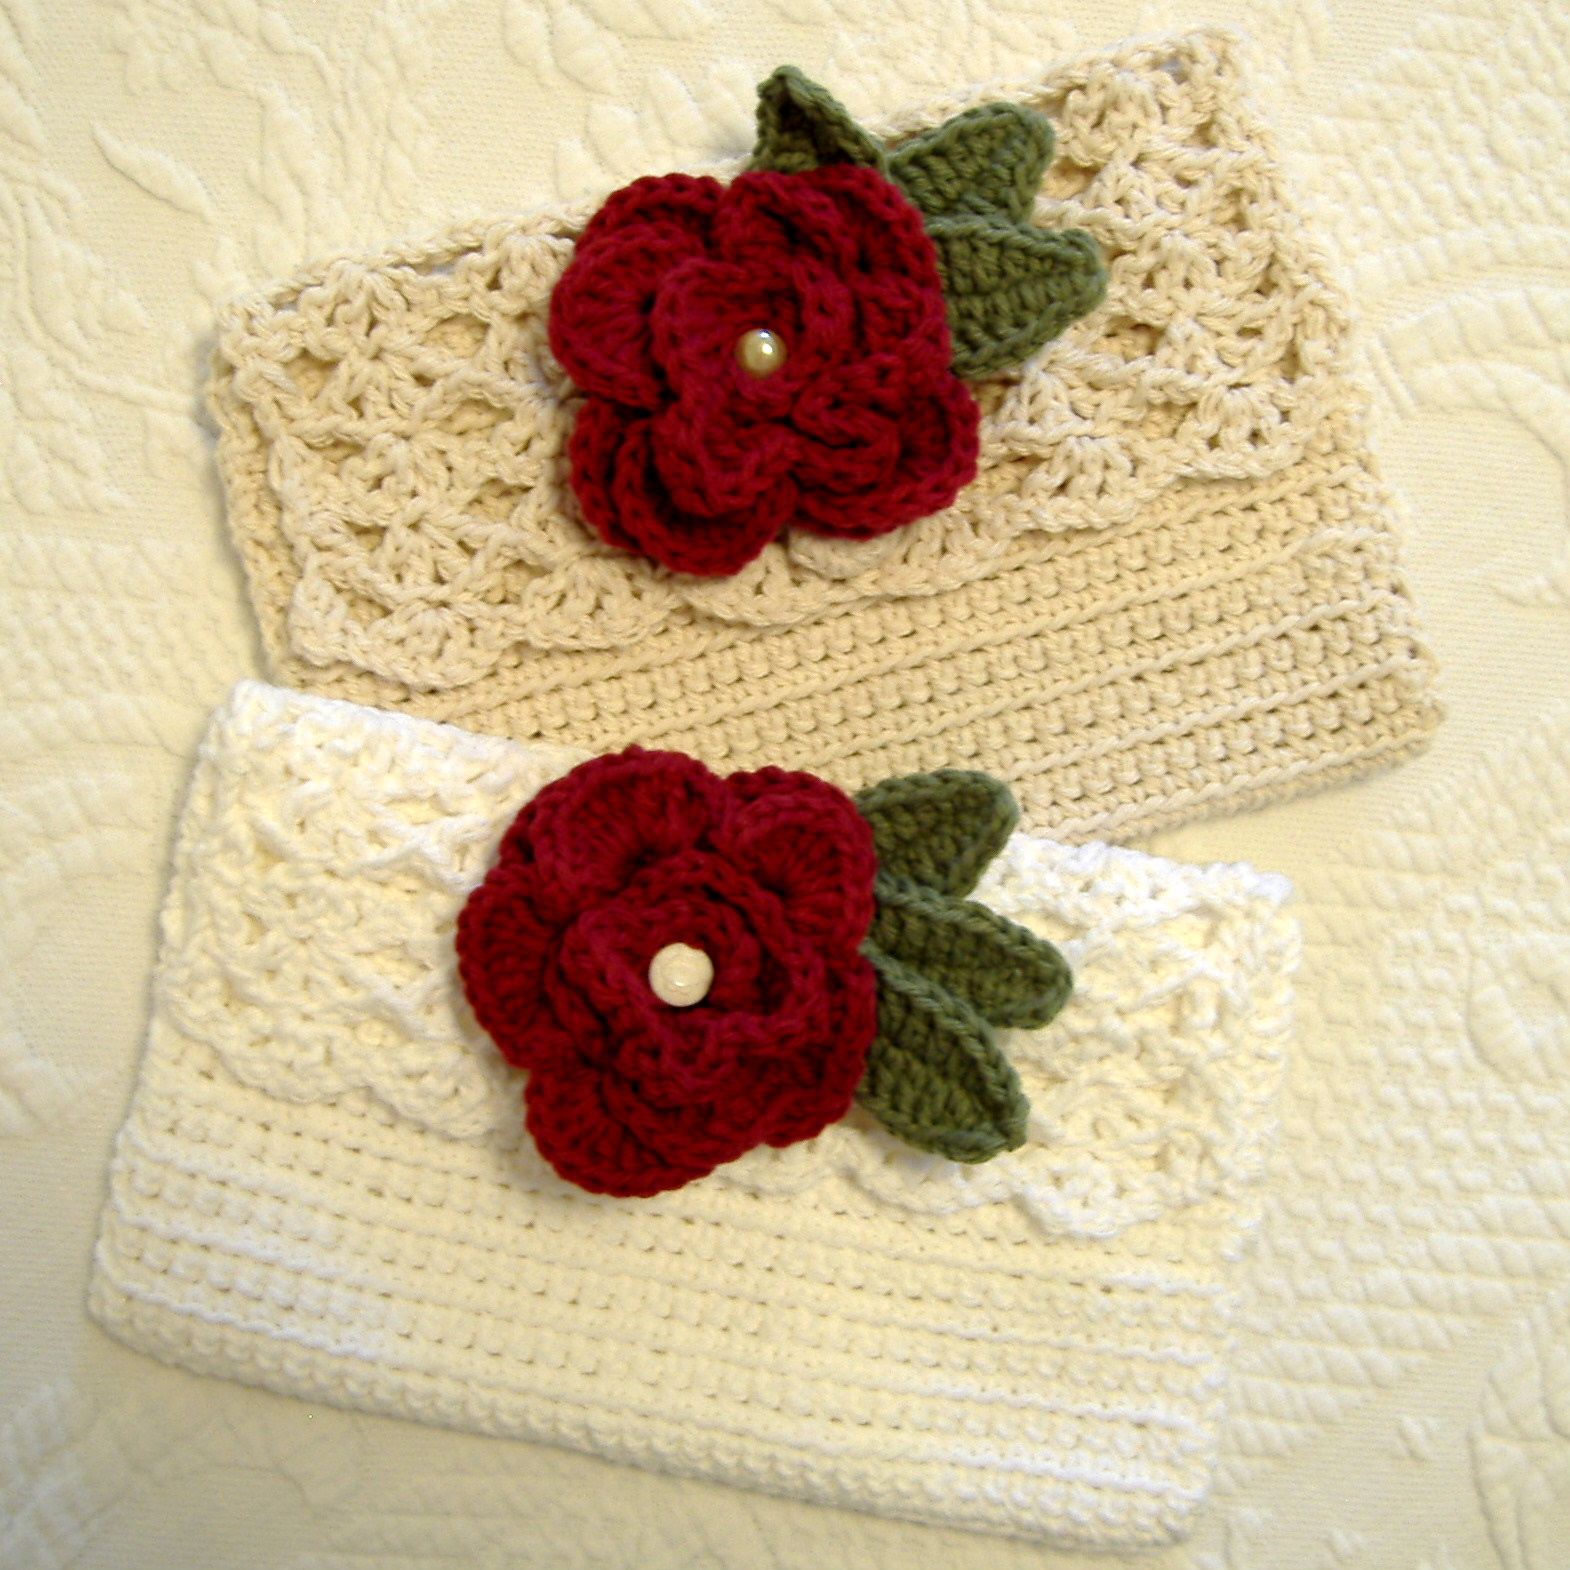 Crochet Patterns For Purses : CROCHET PATTERNS PURSES ? Patterns